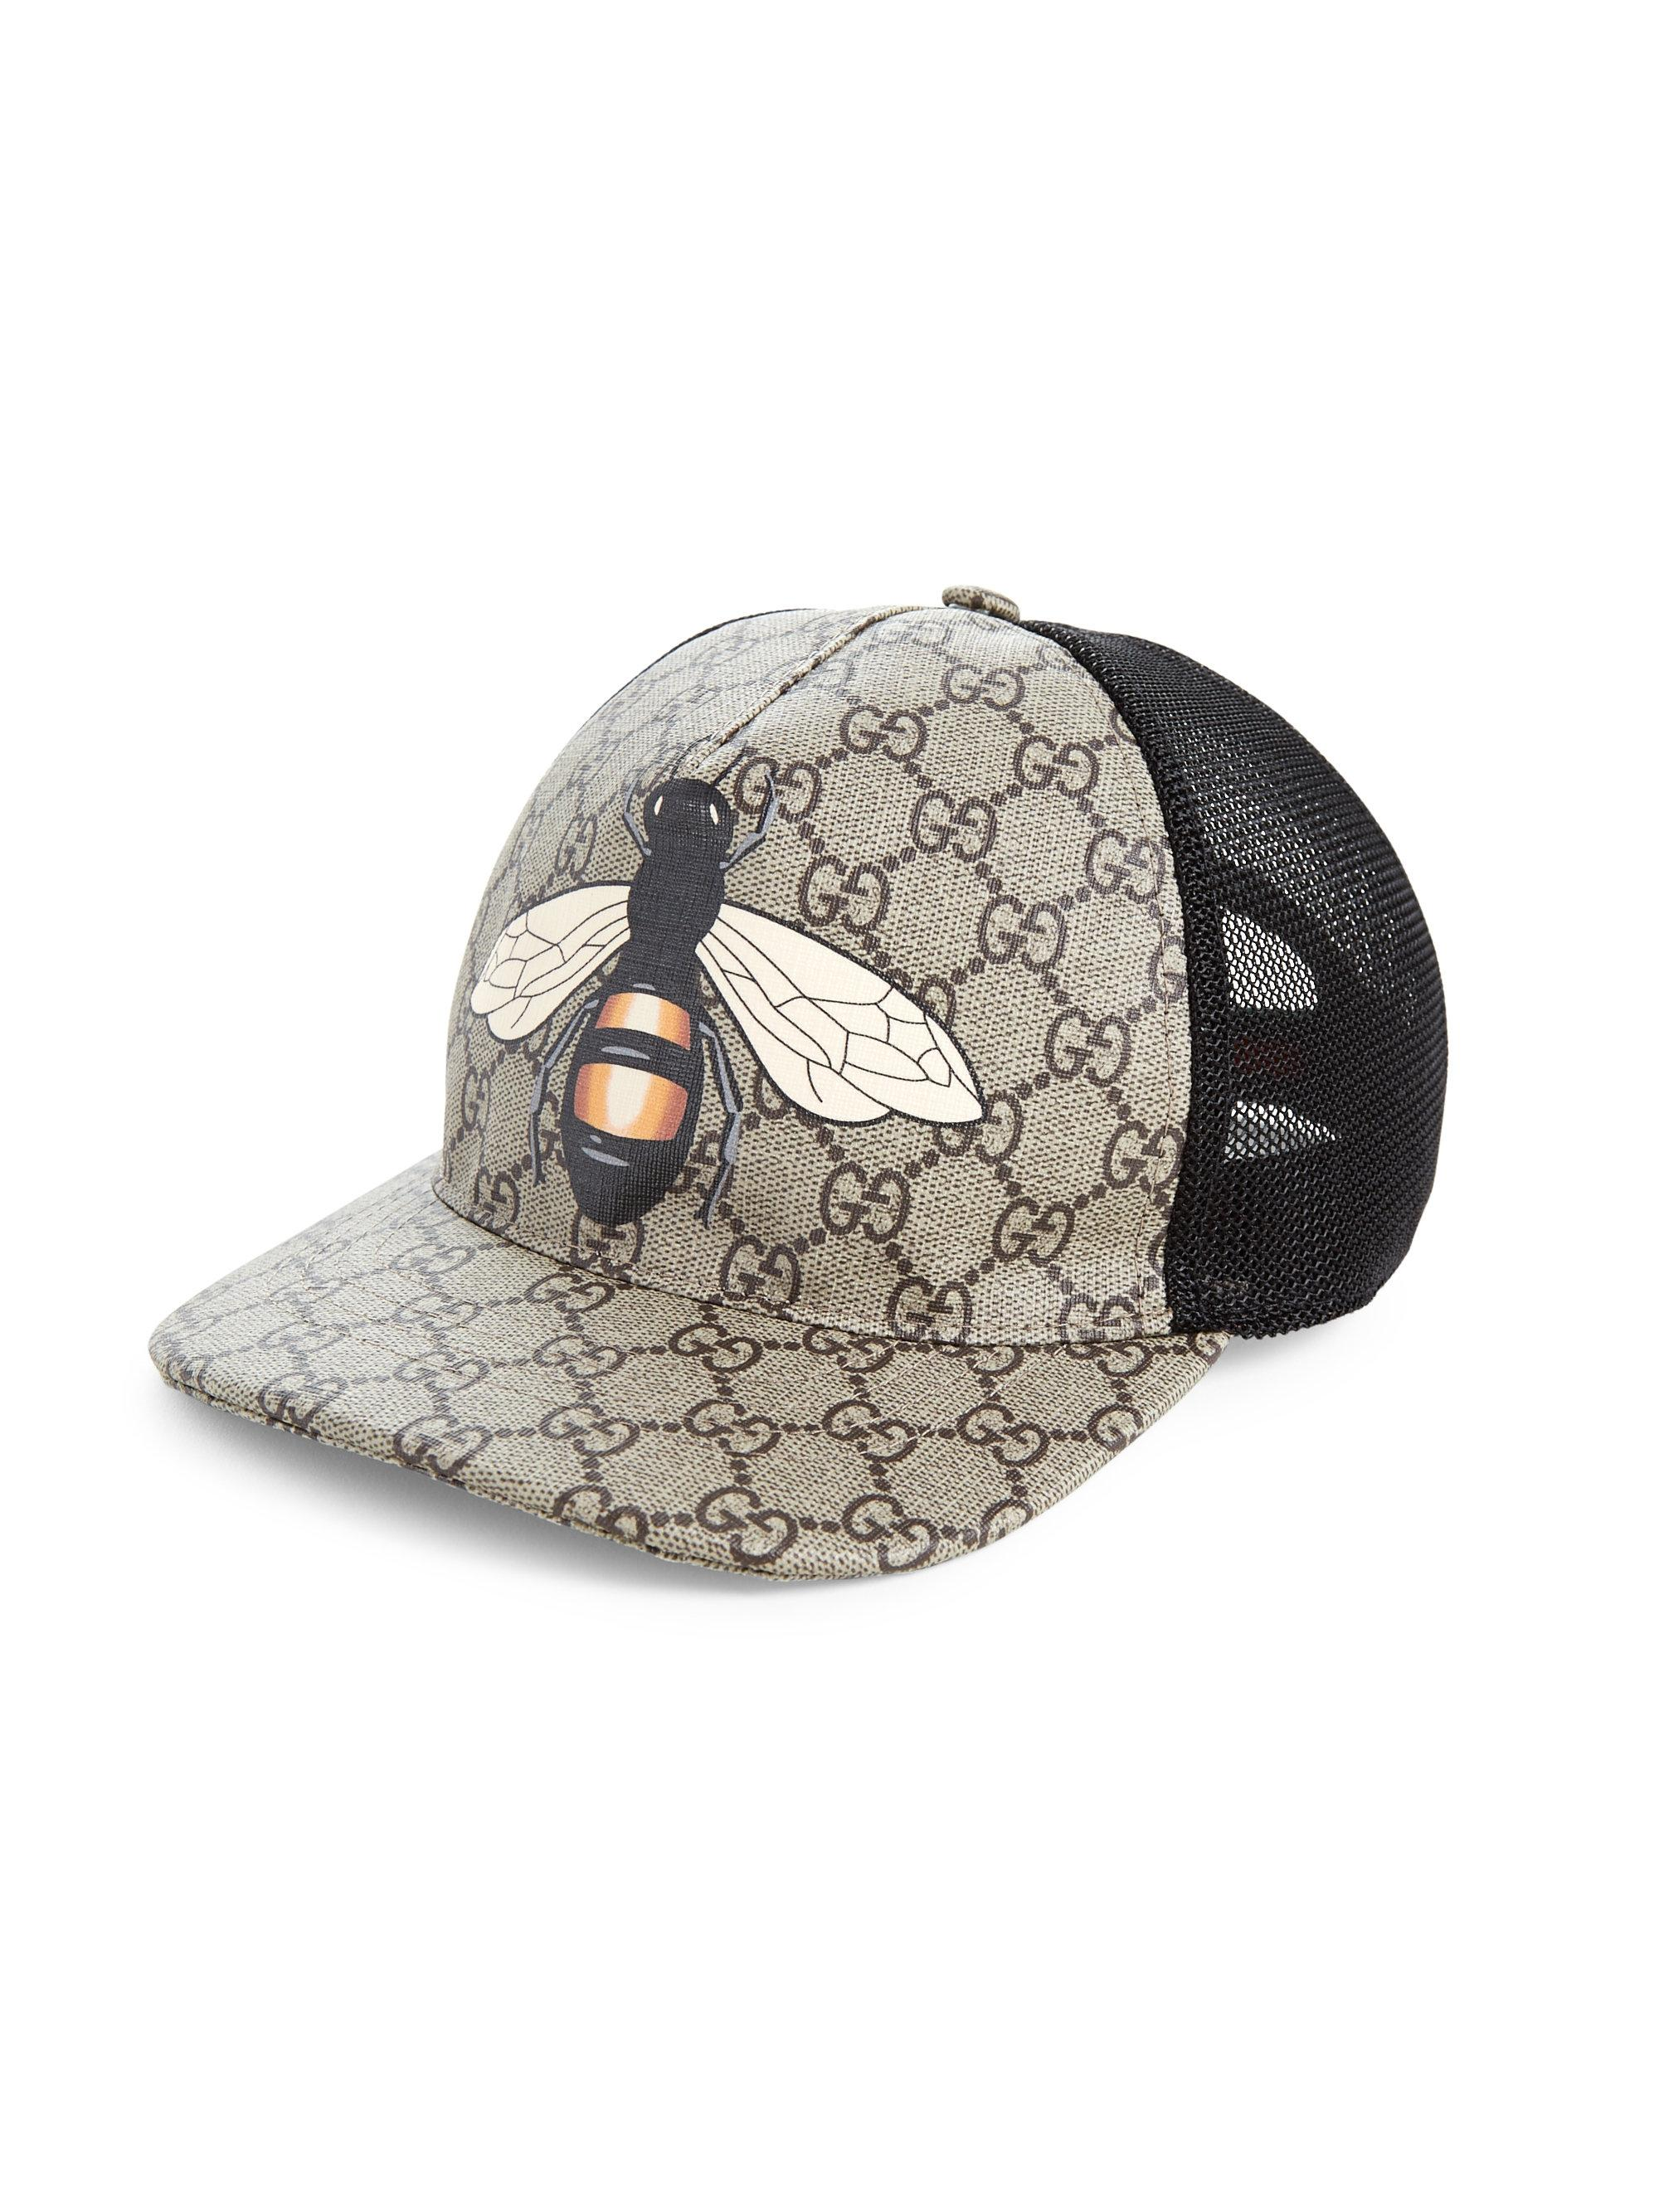 0124765d33eb71 Gucci Bee Baseball Cap in Natural for Men - Lyst